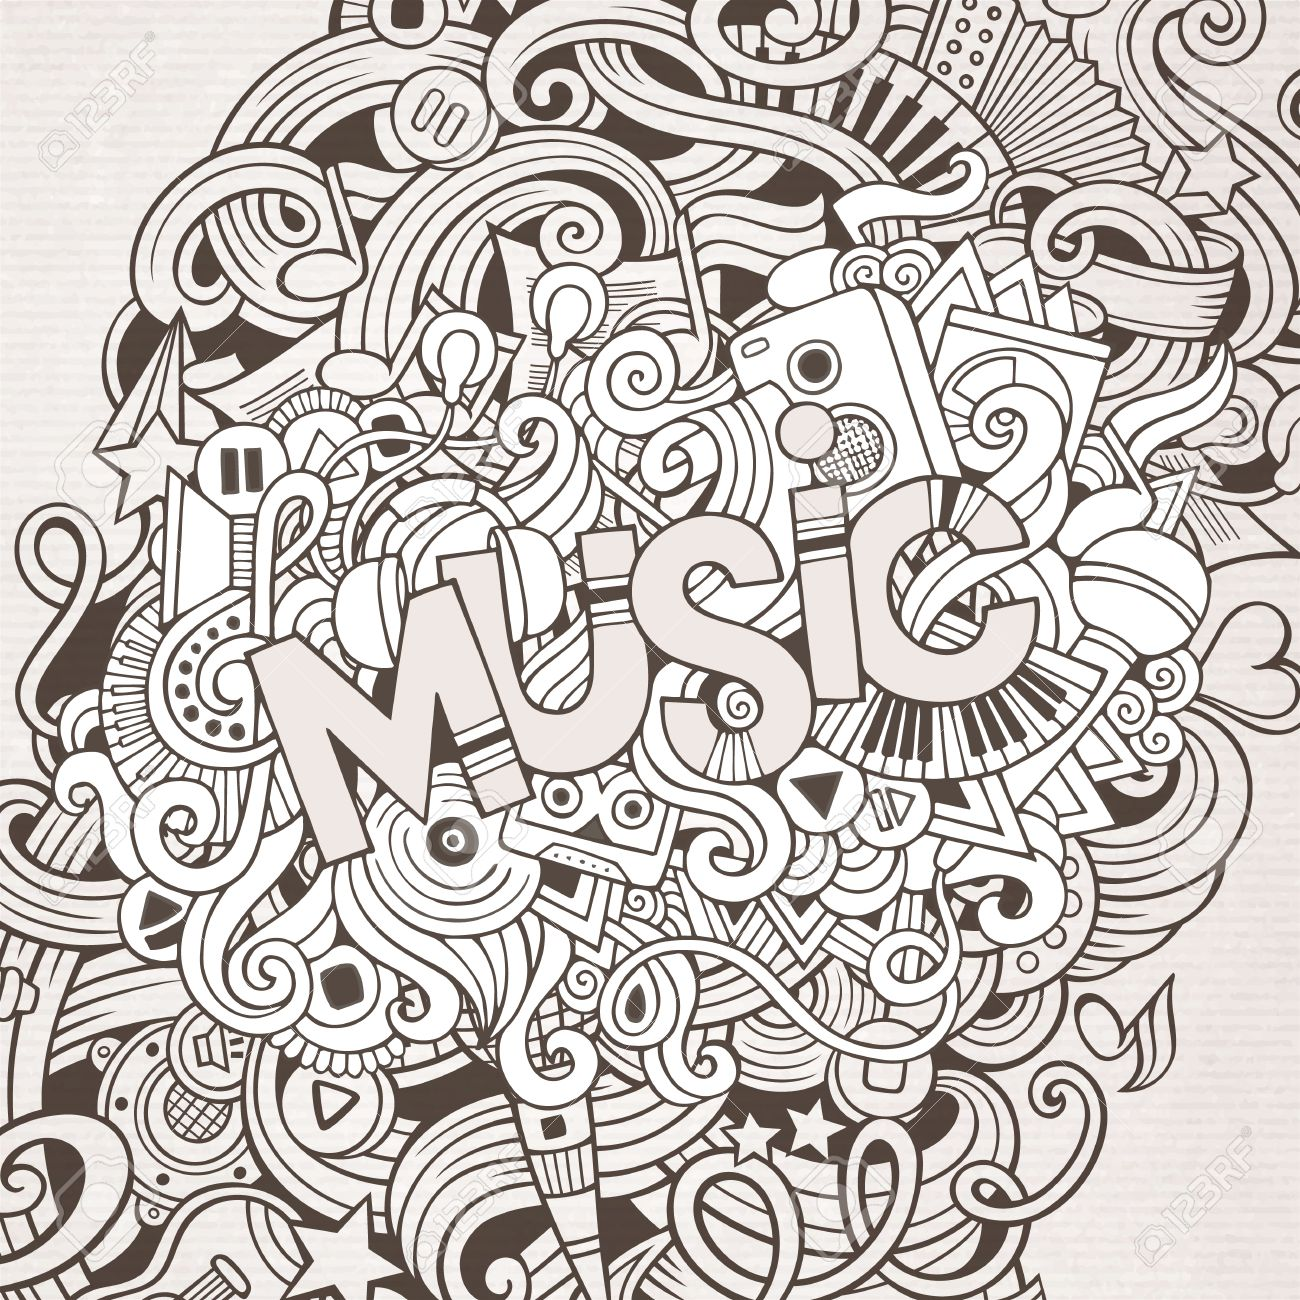 Music hand lettering and doodles elements background stock vector 48484327